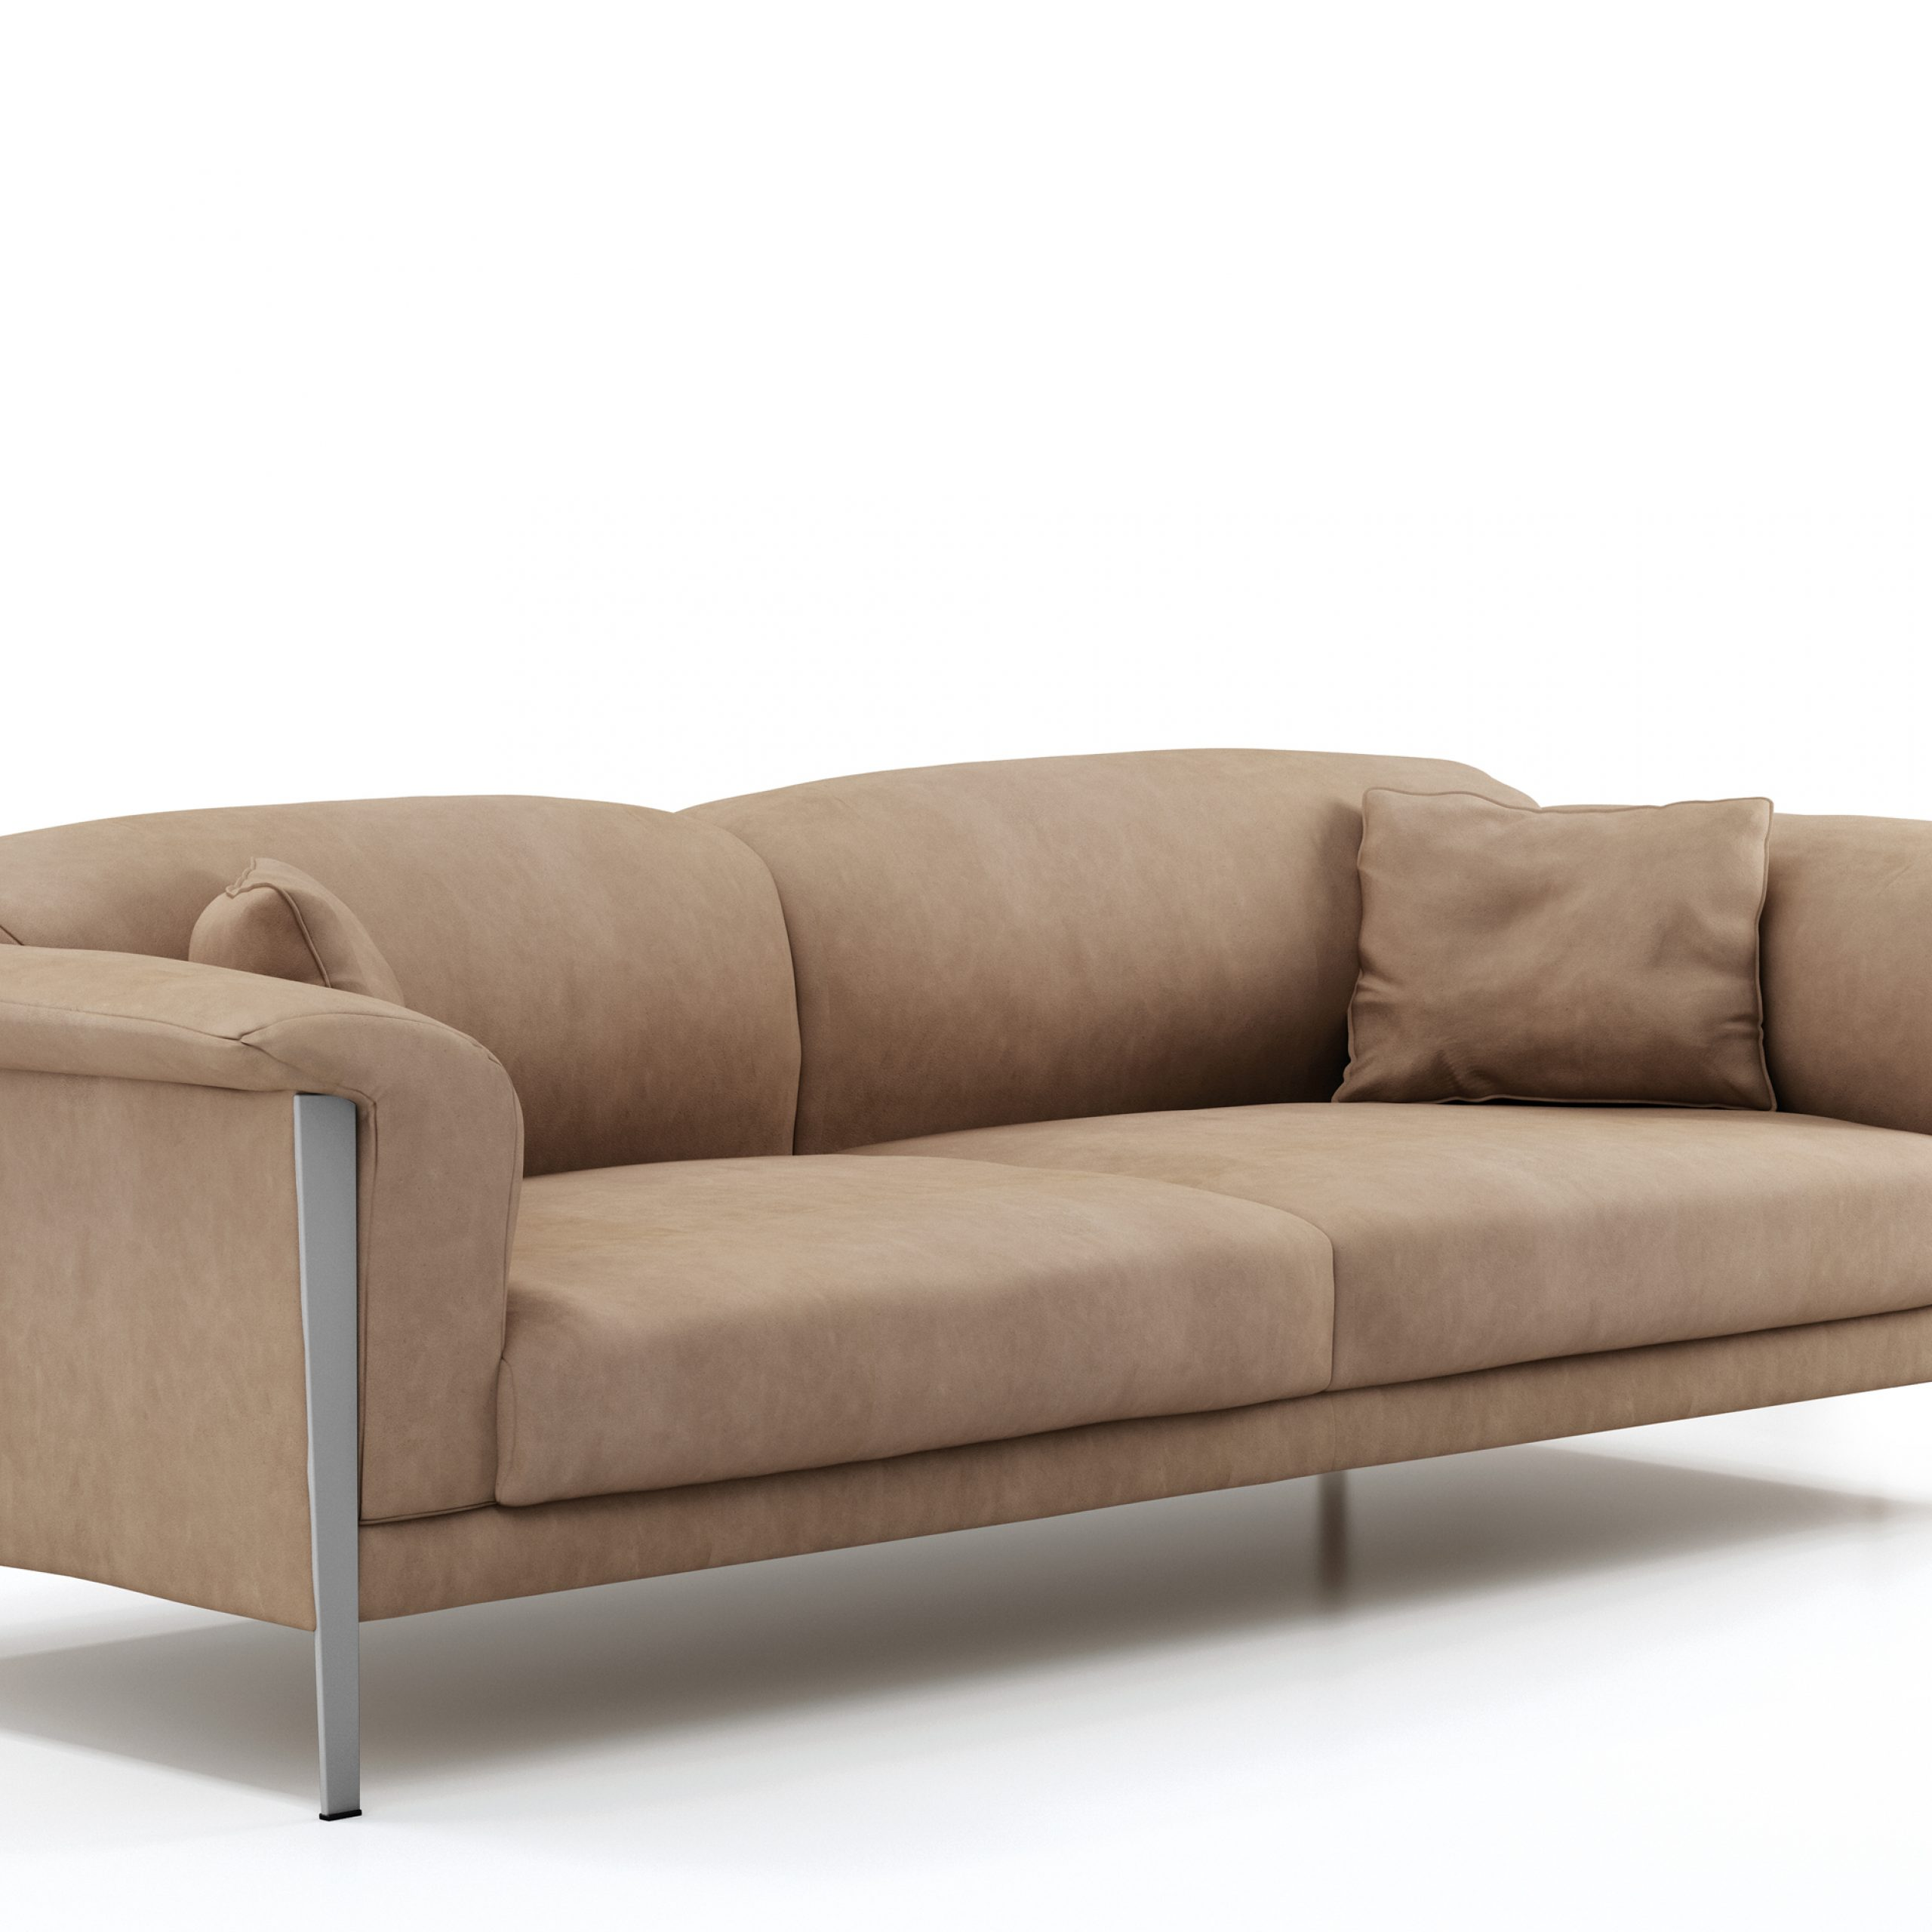 Cream Color Extra Soft Padded Leather Sofa Set Sacramento Intended For Cream Colored Sofas (View 11 of 15)